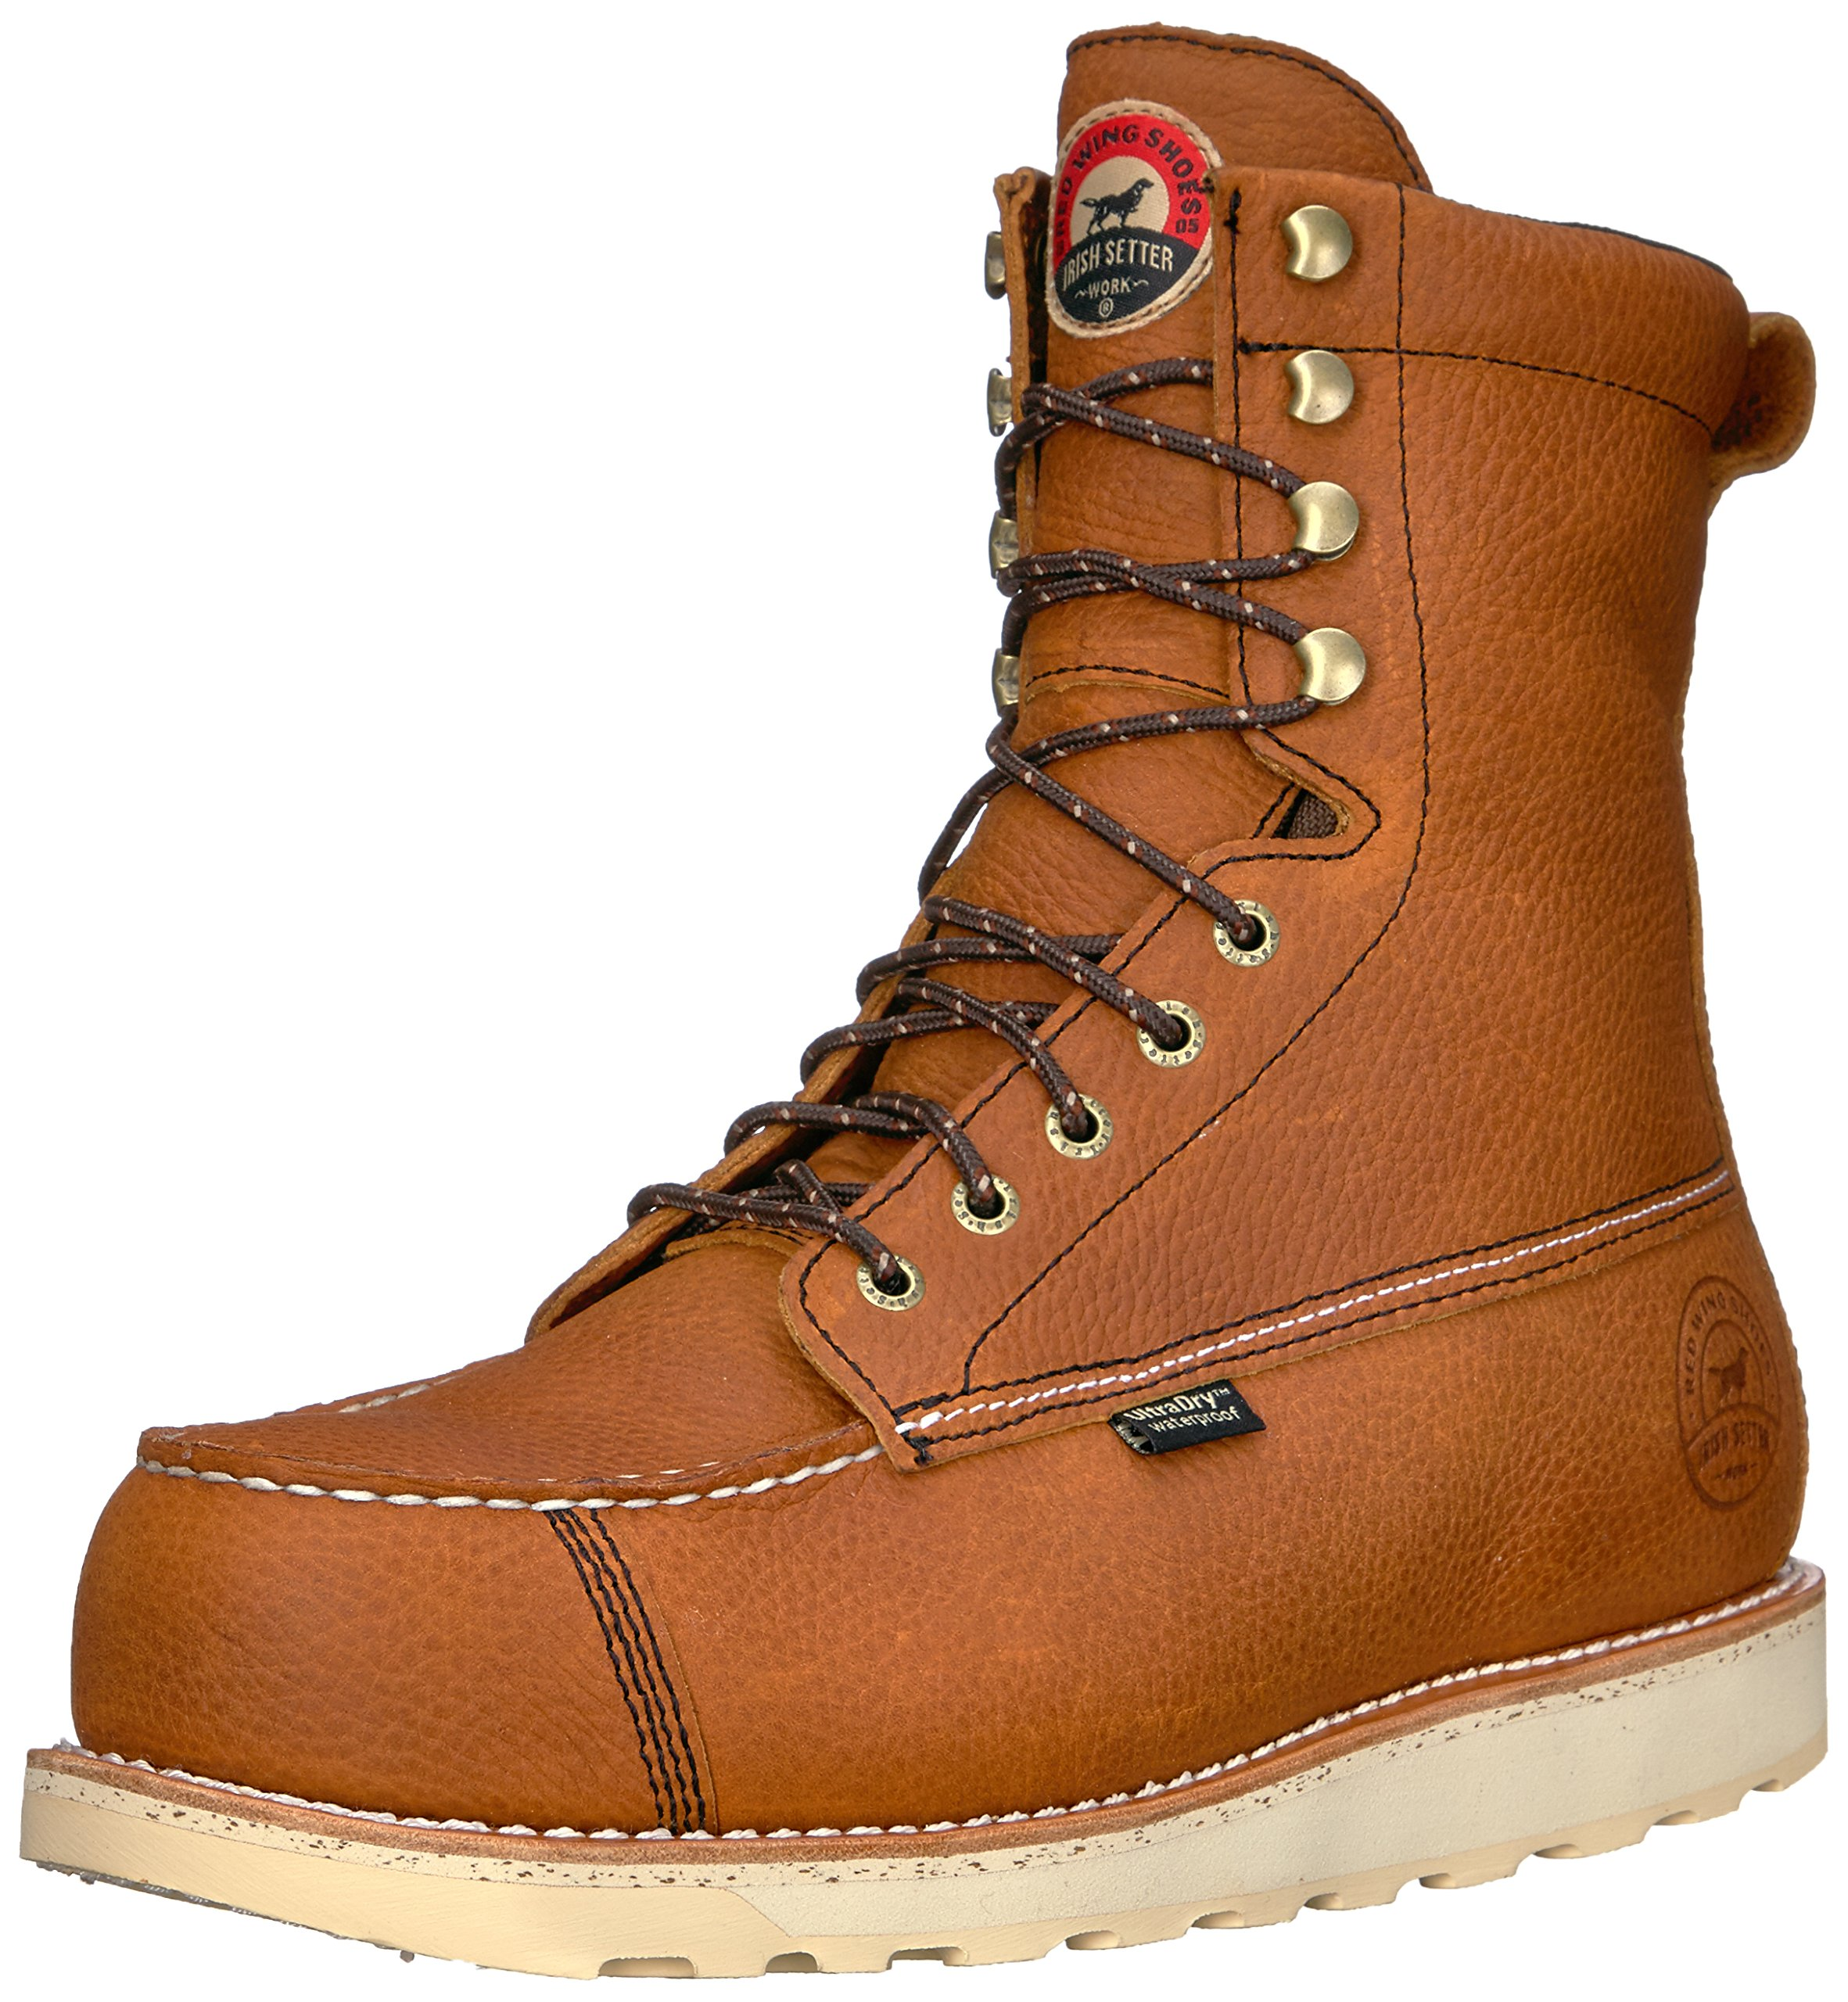 Irish Setter Men's Wingshooter Safety Toe 8'' Work Boot, Brown, 10 D US by Irish Setter